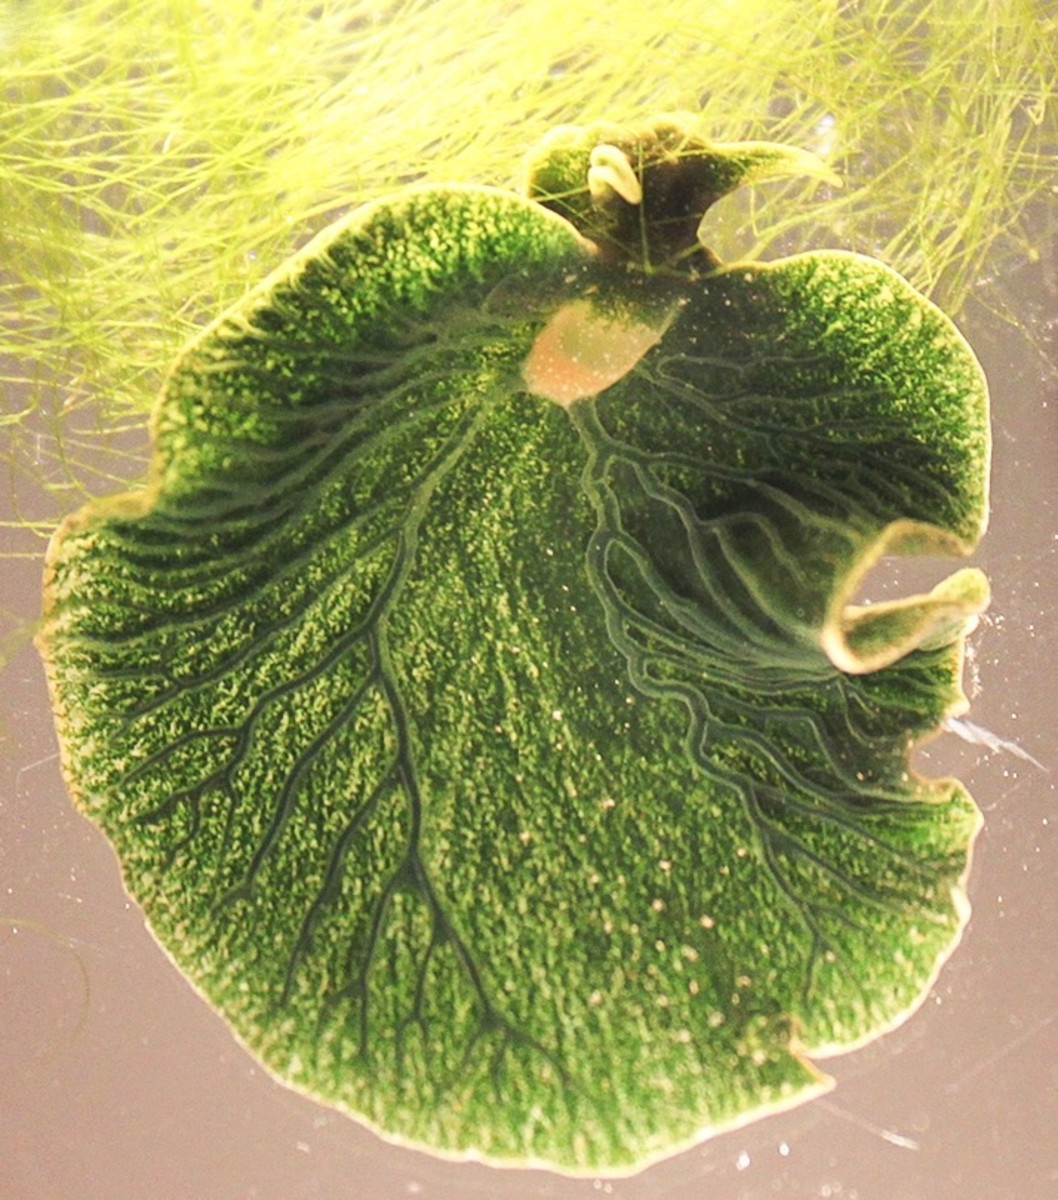 The eastern emerald elysia is green because it contains functional chloroplasts.